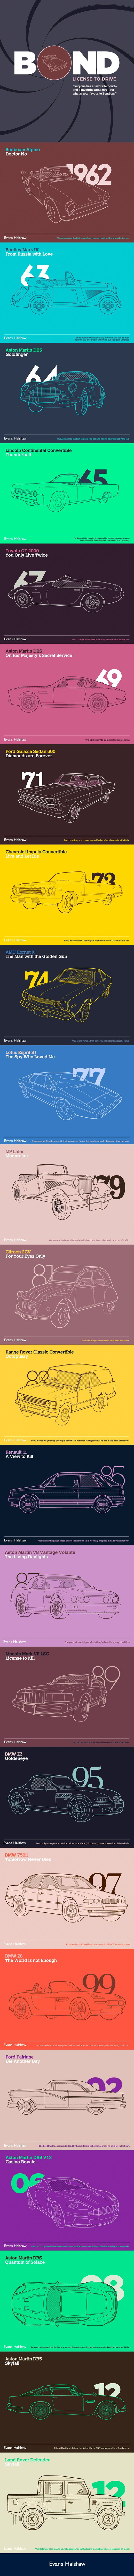 Samochody Jamesa Bonda (http://www.guardian.co.uk/news/datablog/2012/oct/26/illustrated-history-james-bond-cars)